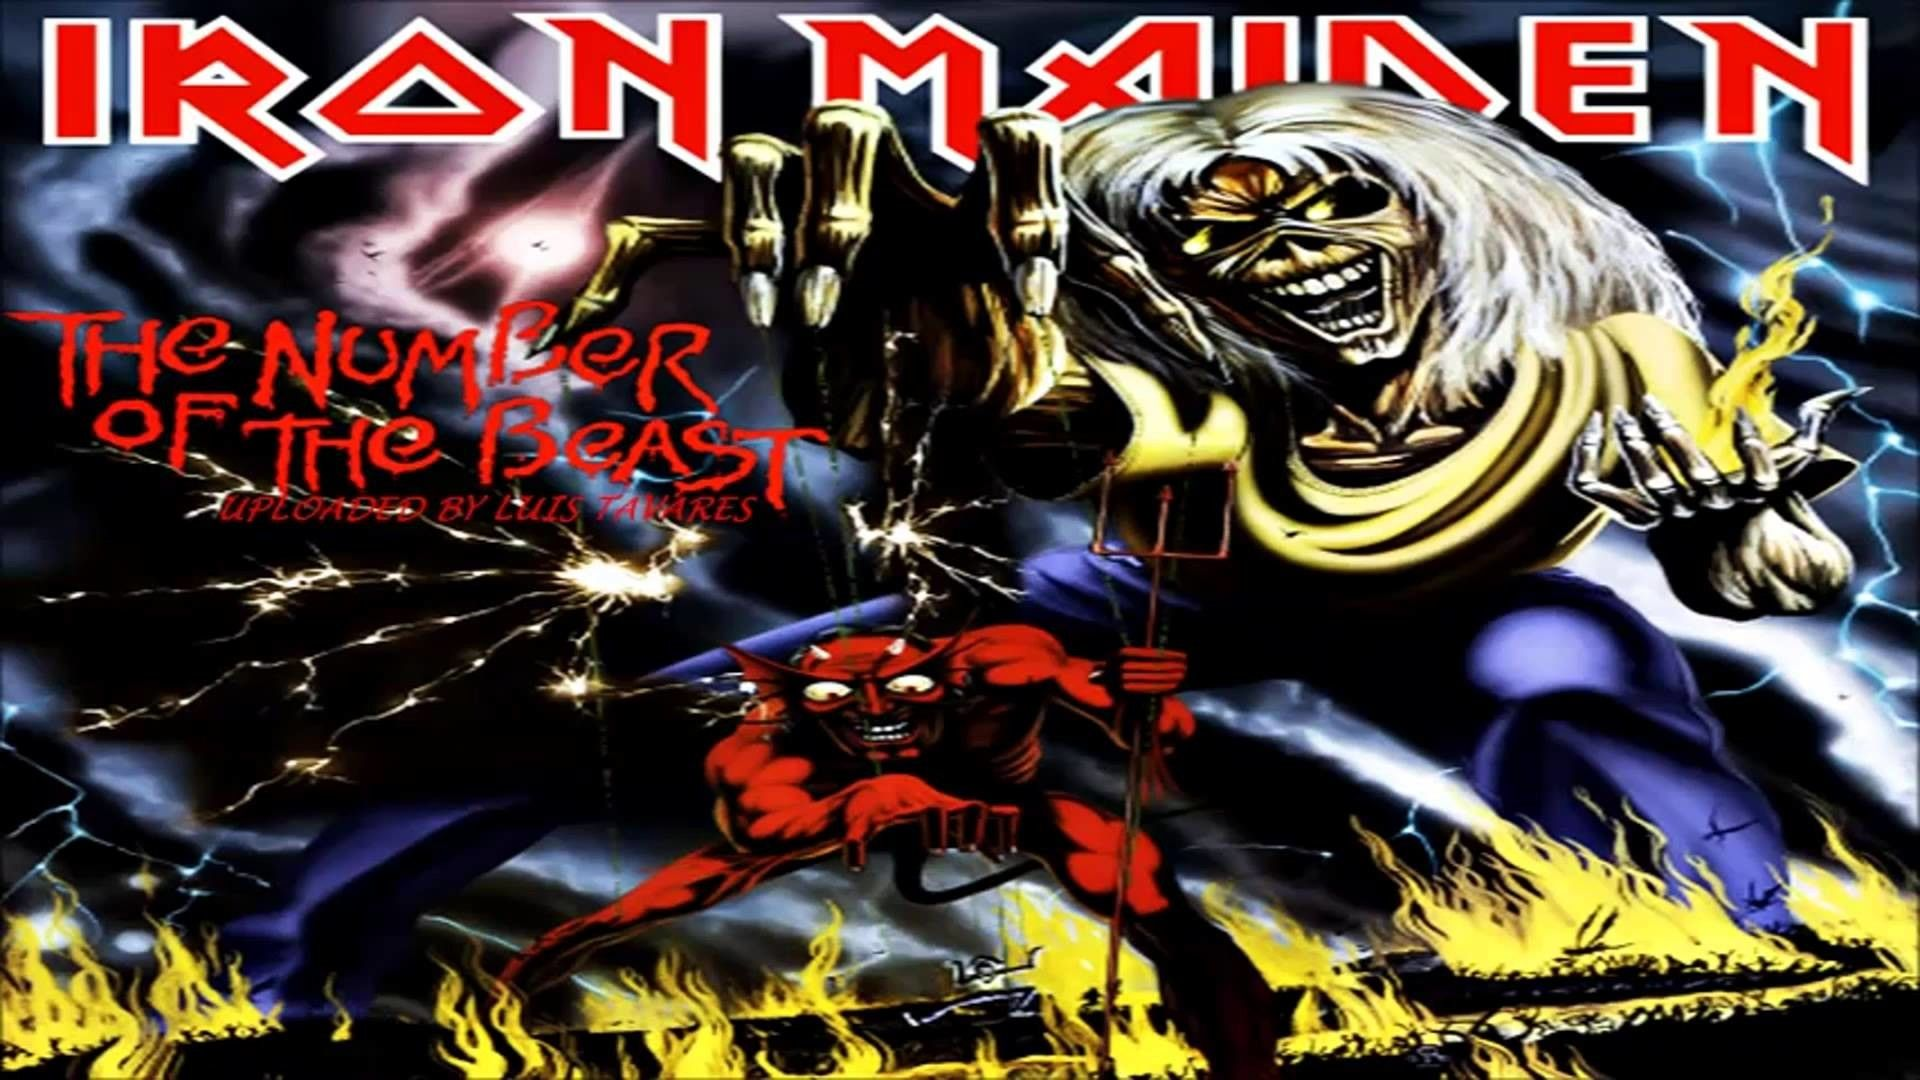 Iron Maiden Number Of The Beast Wallpapers High Resolution Iron